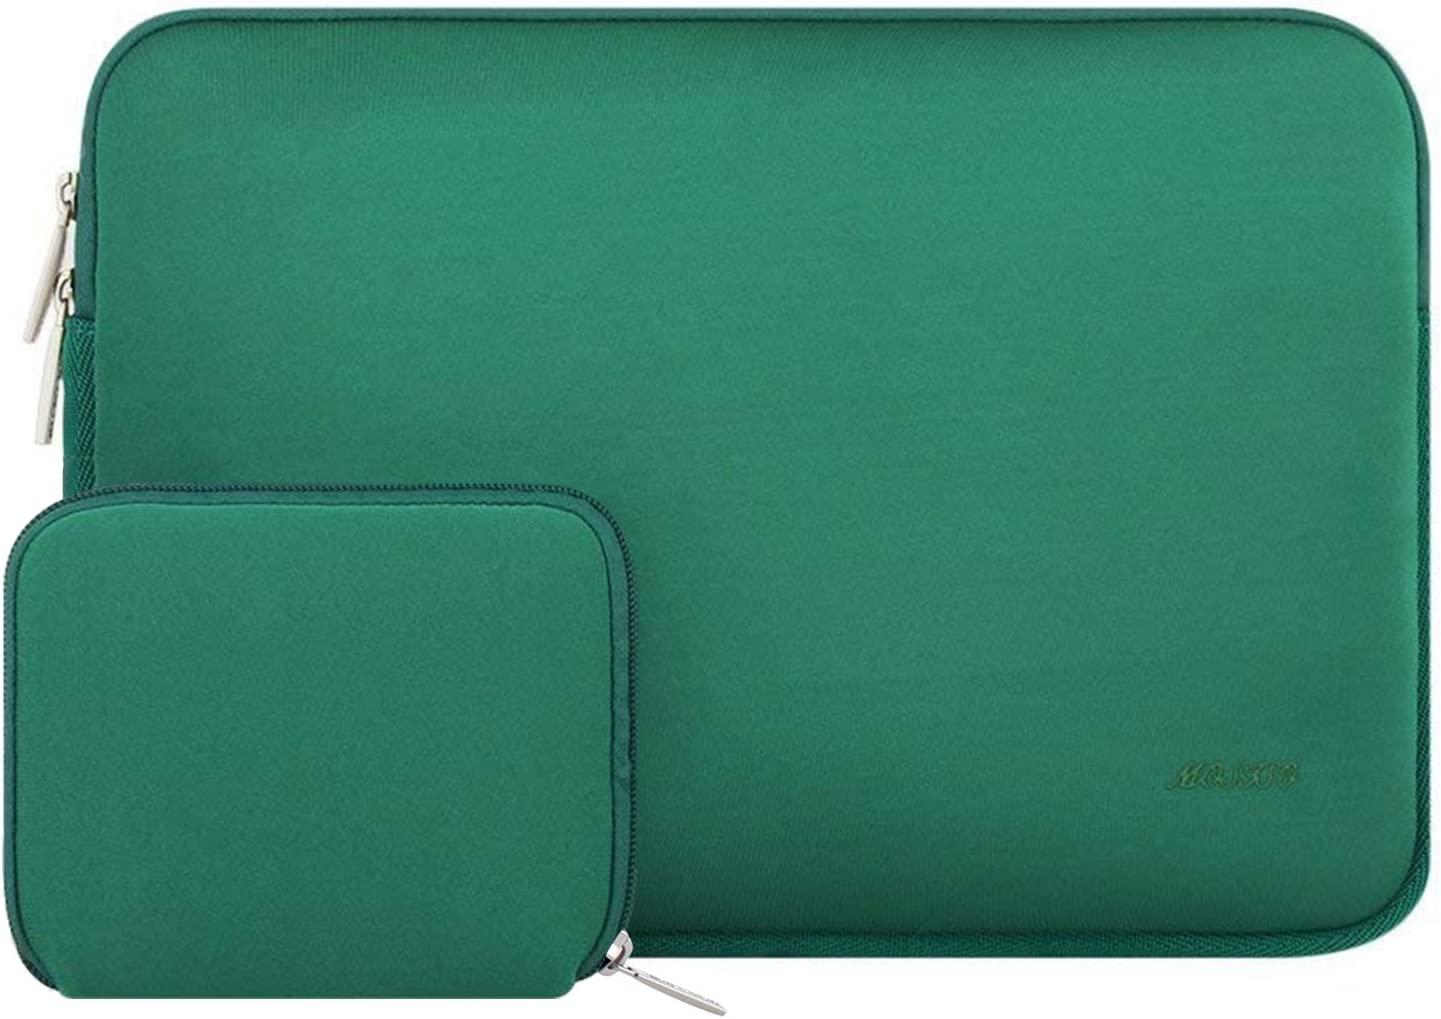 MOSISO Laptop Sleeve Compatible with 13-13.3 inch MacBook Pro, MacBook Air, Notebook Computer, Water Repellent Neoprene Bag with Small Case, Peacock Green